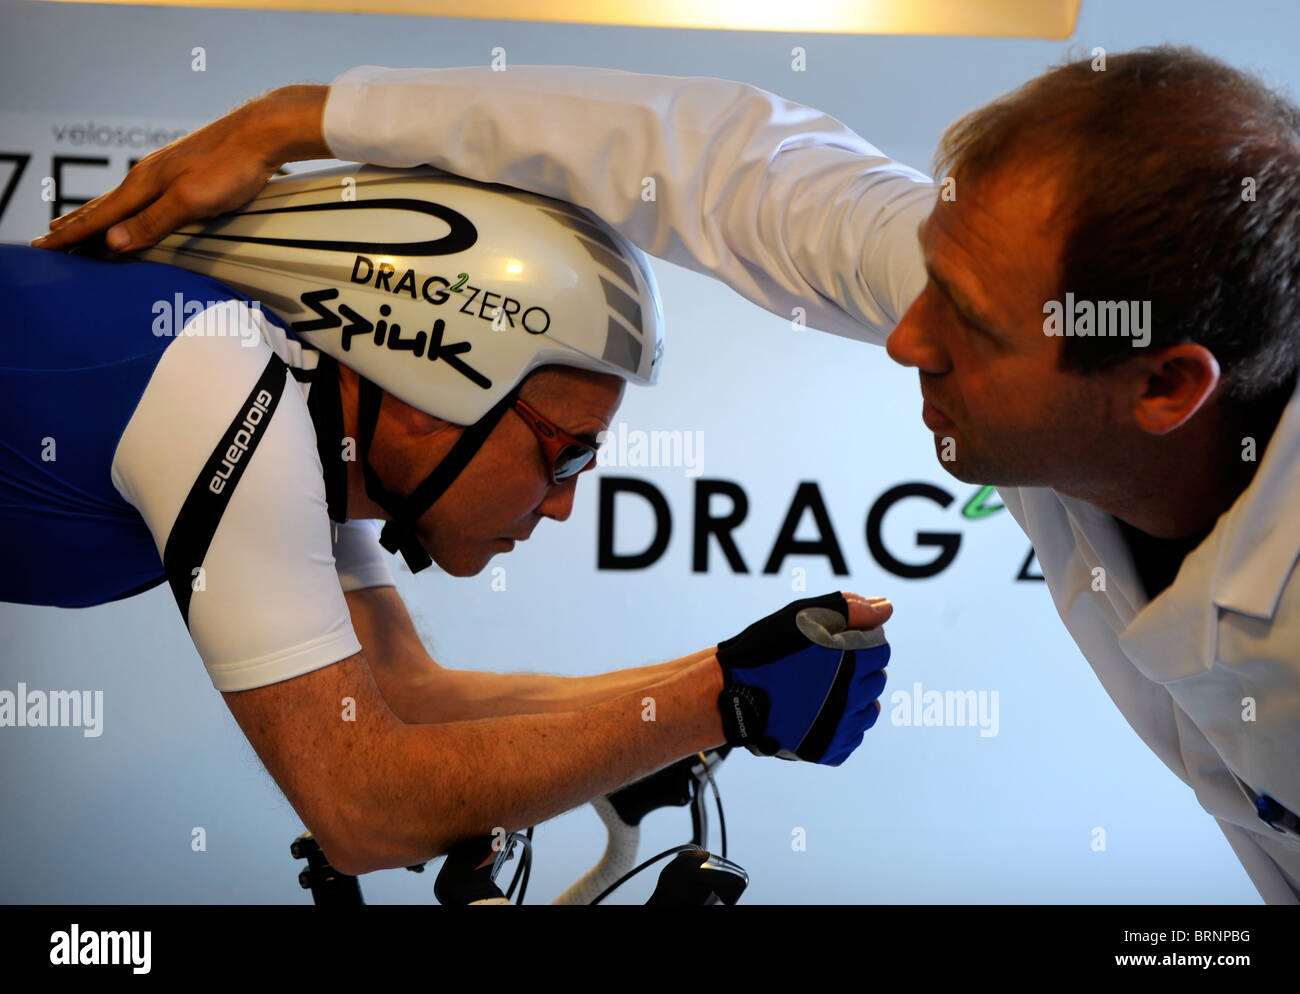 Aerodynamics expert Simon Smart uses a smoke test in a wind tunnel experiment for cycling clothing and racing bicycle - Stock Image